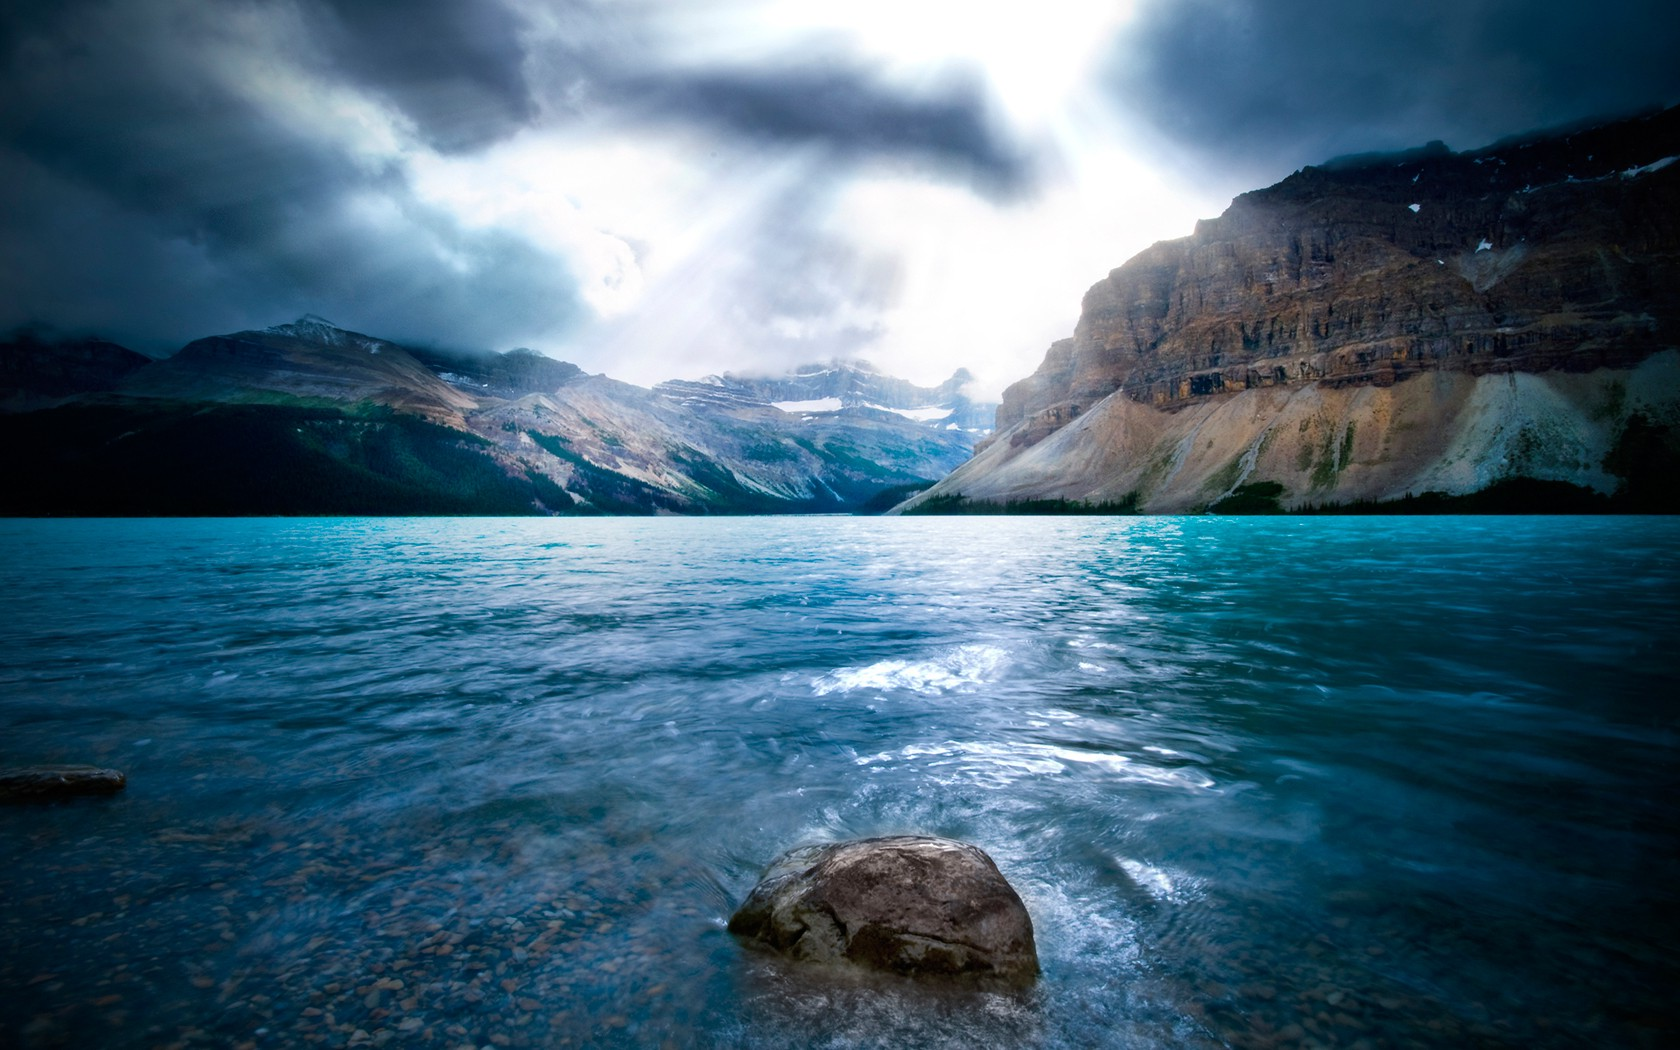 Fall Blessings Wallpaper Water Stones Sunlight Clouds Landscape Nature